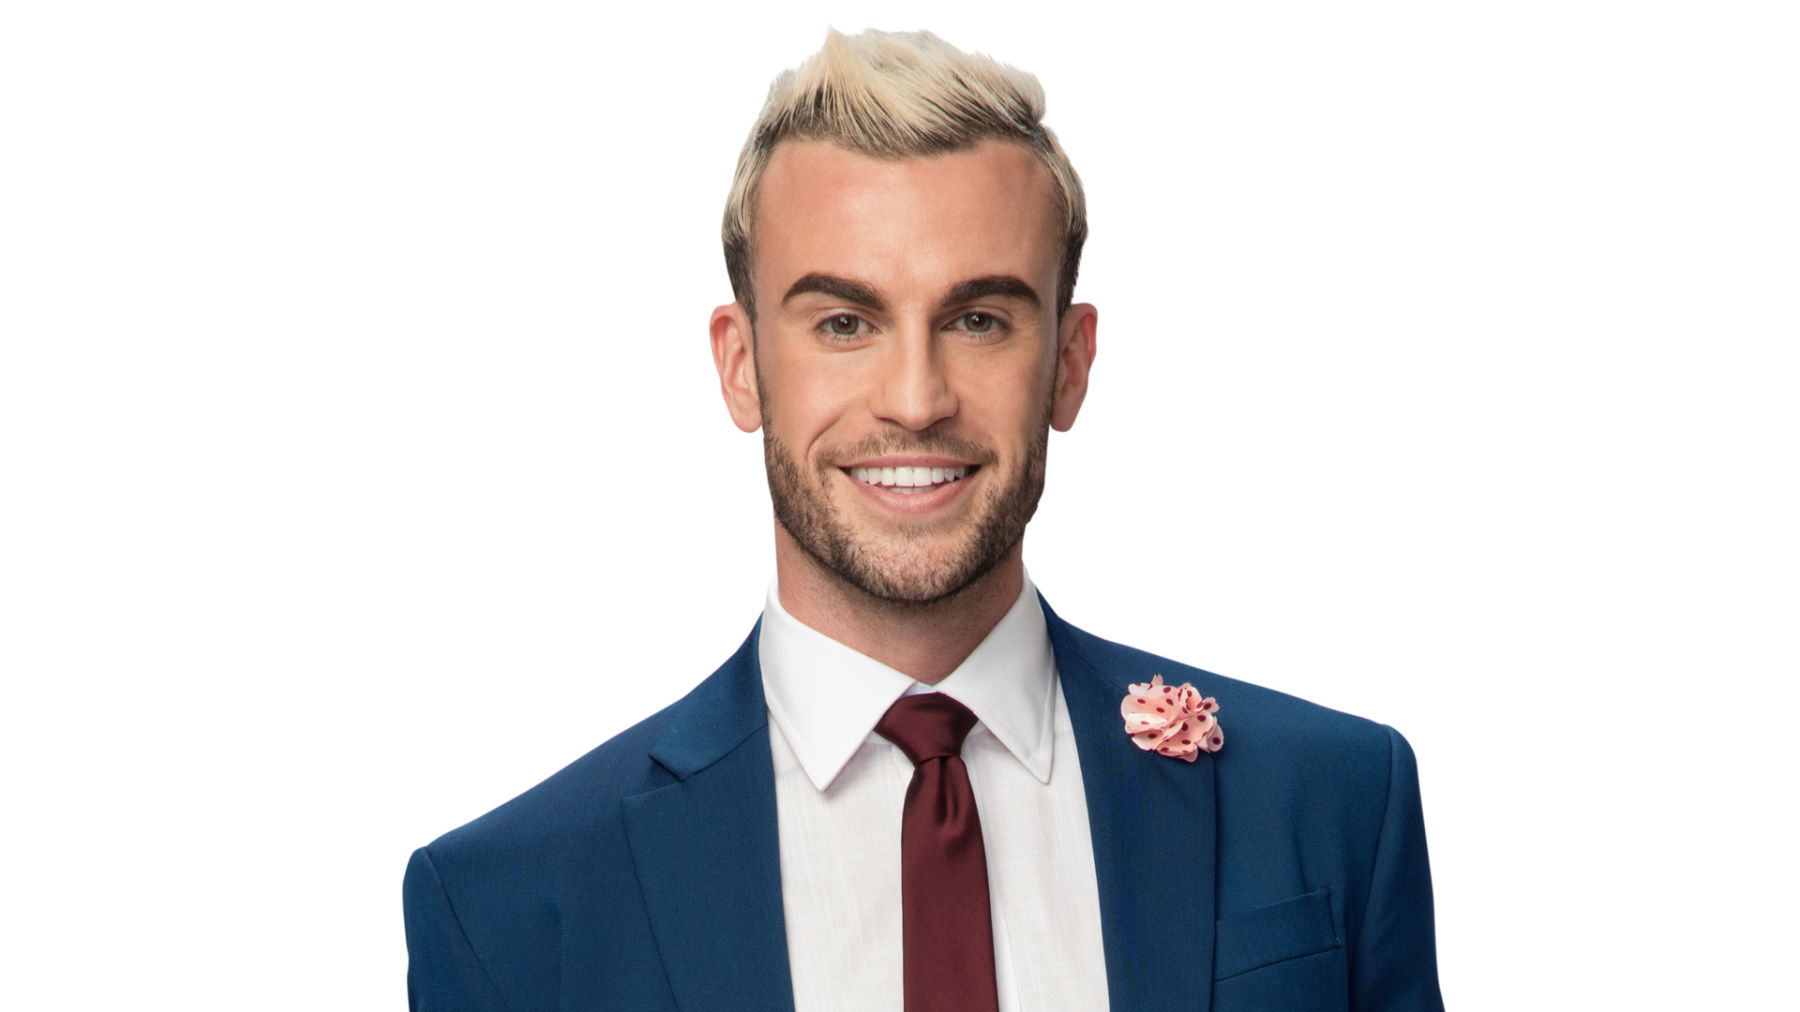 lance bass finding prince charming makes history for gay men 2016 images